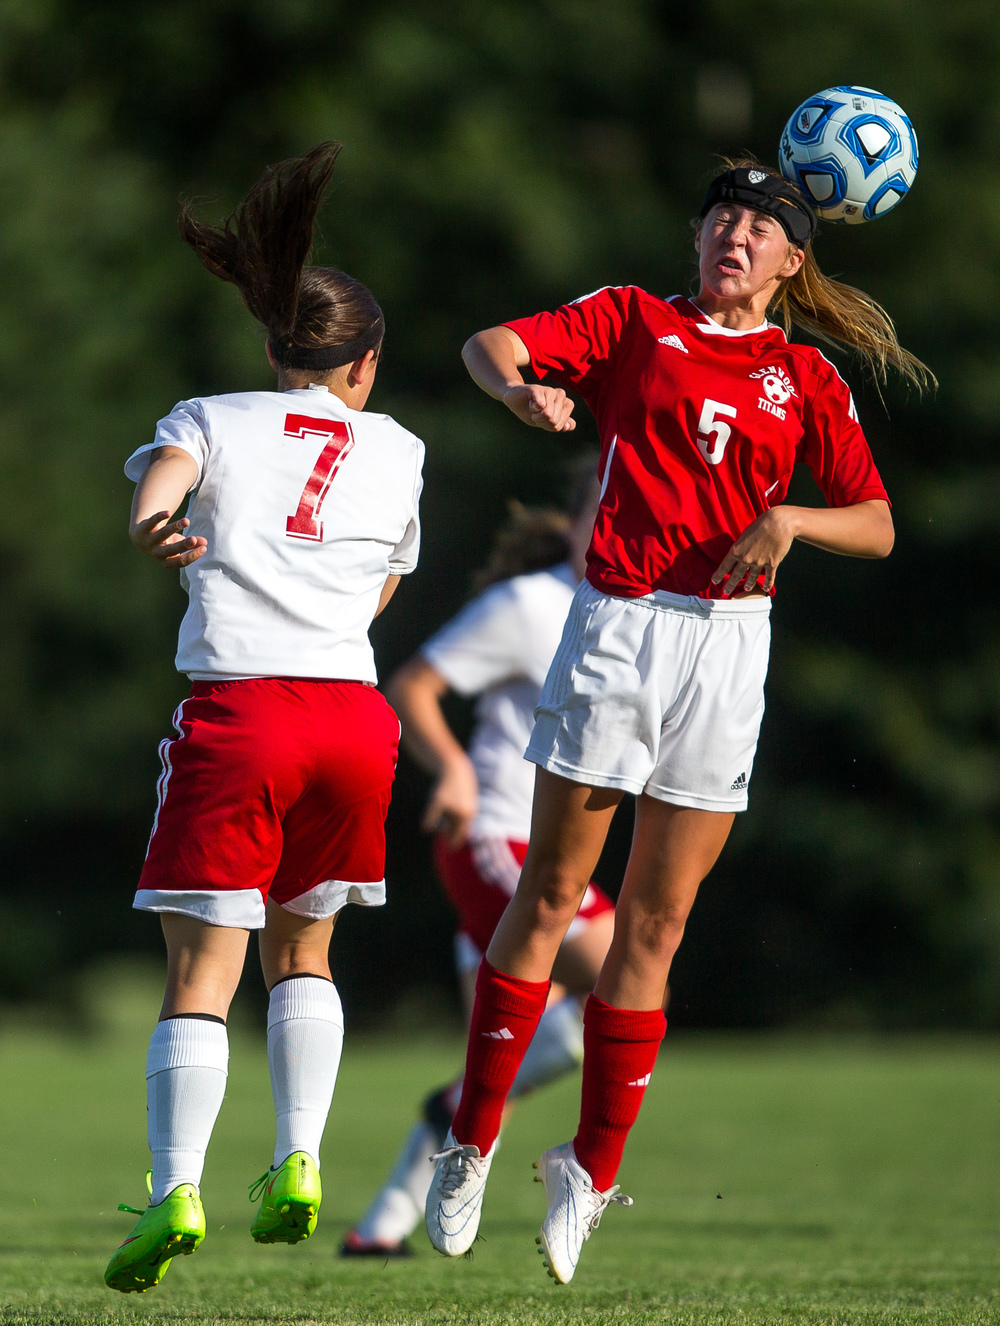 Glenwood's Rachel Mays (5) smacks a header against Metamora's Mamie Ambrosch (7) in the first half during the Class 2A Springfield Supersectional at Kiwanis Stadium, Tuesday, June 2, 2015, in Springfield, Ill. Justin L. Fowler/The State Journal-Register